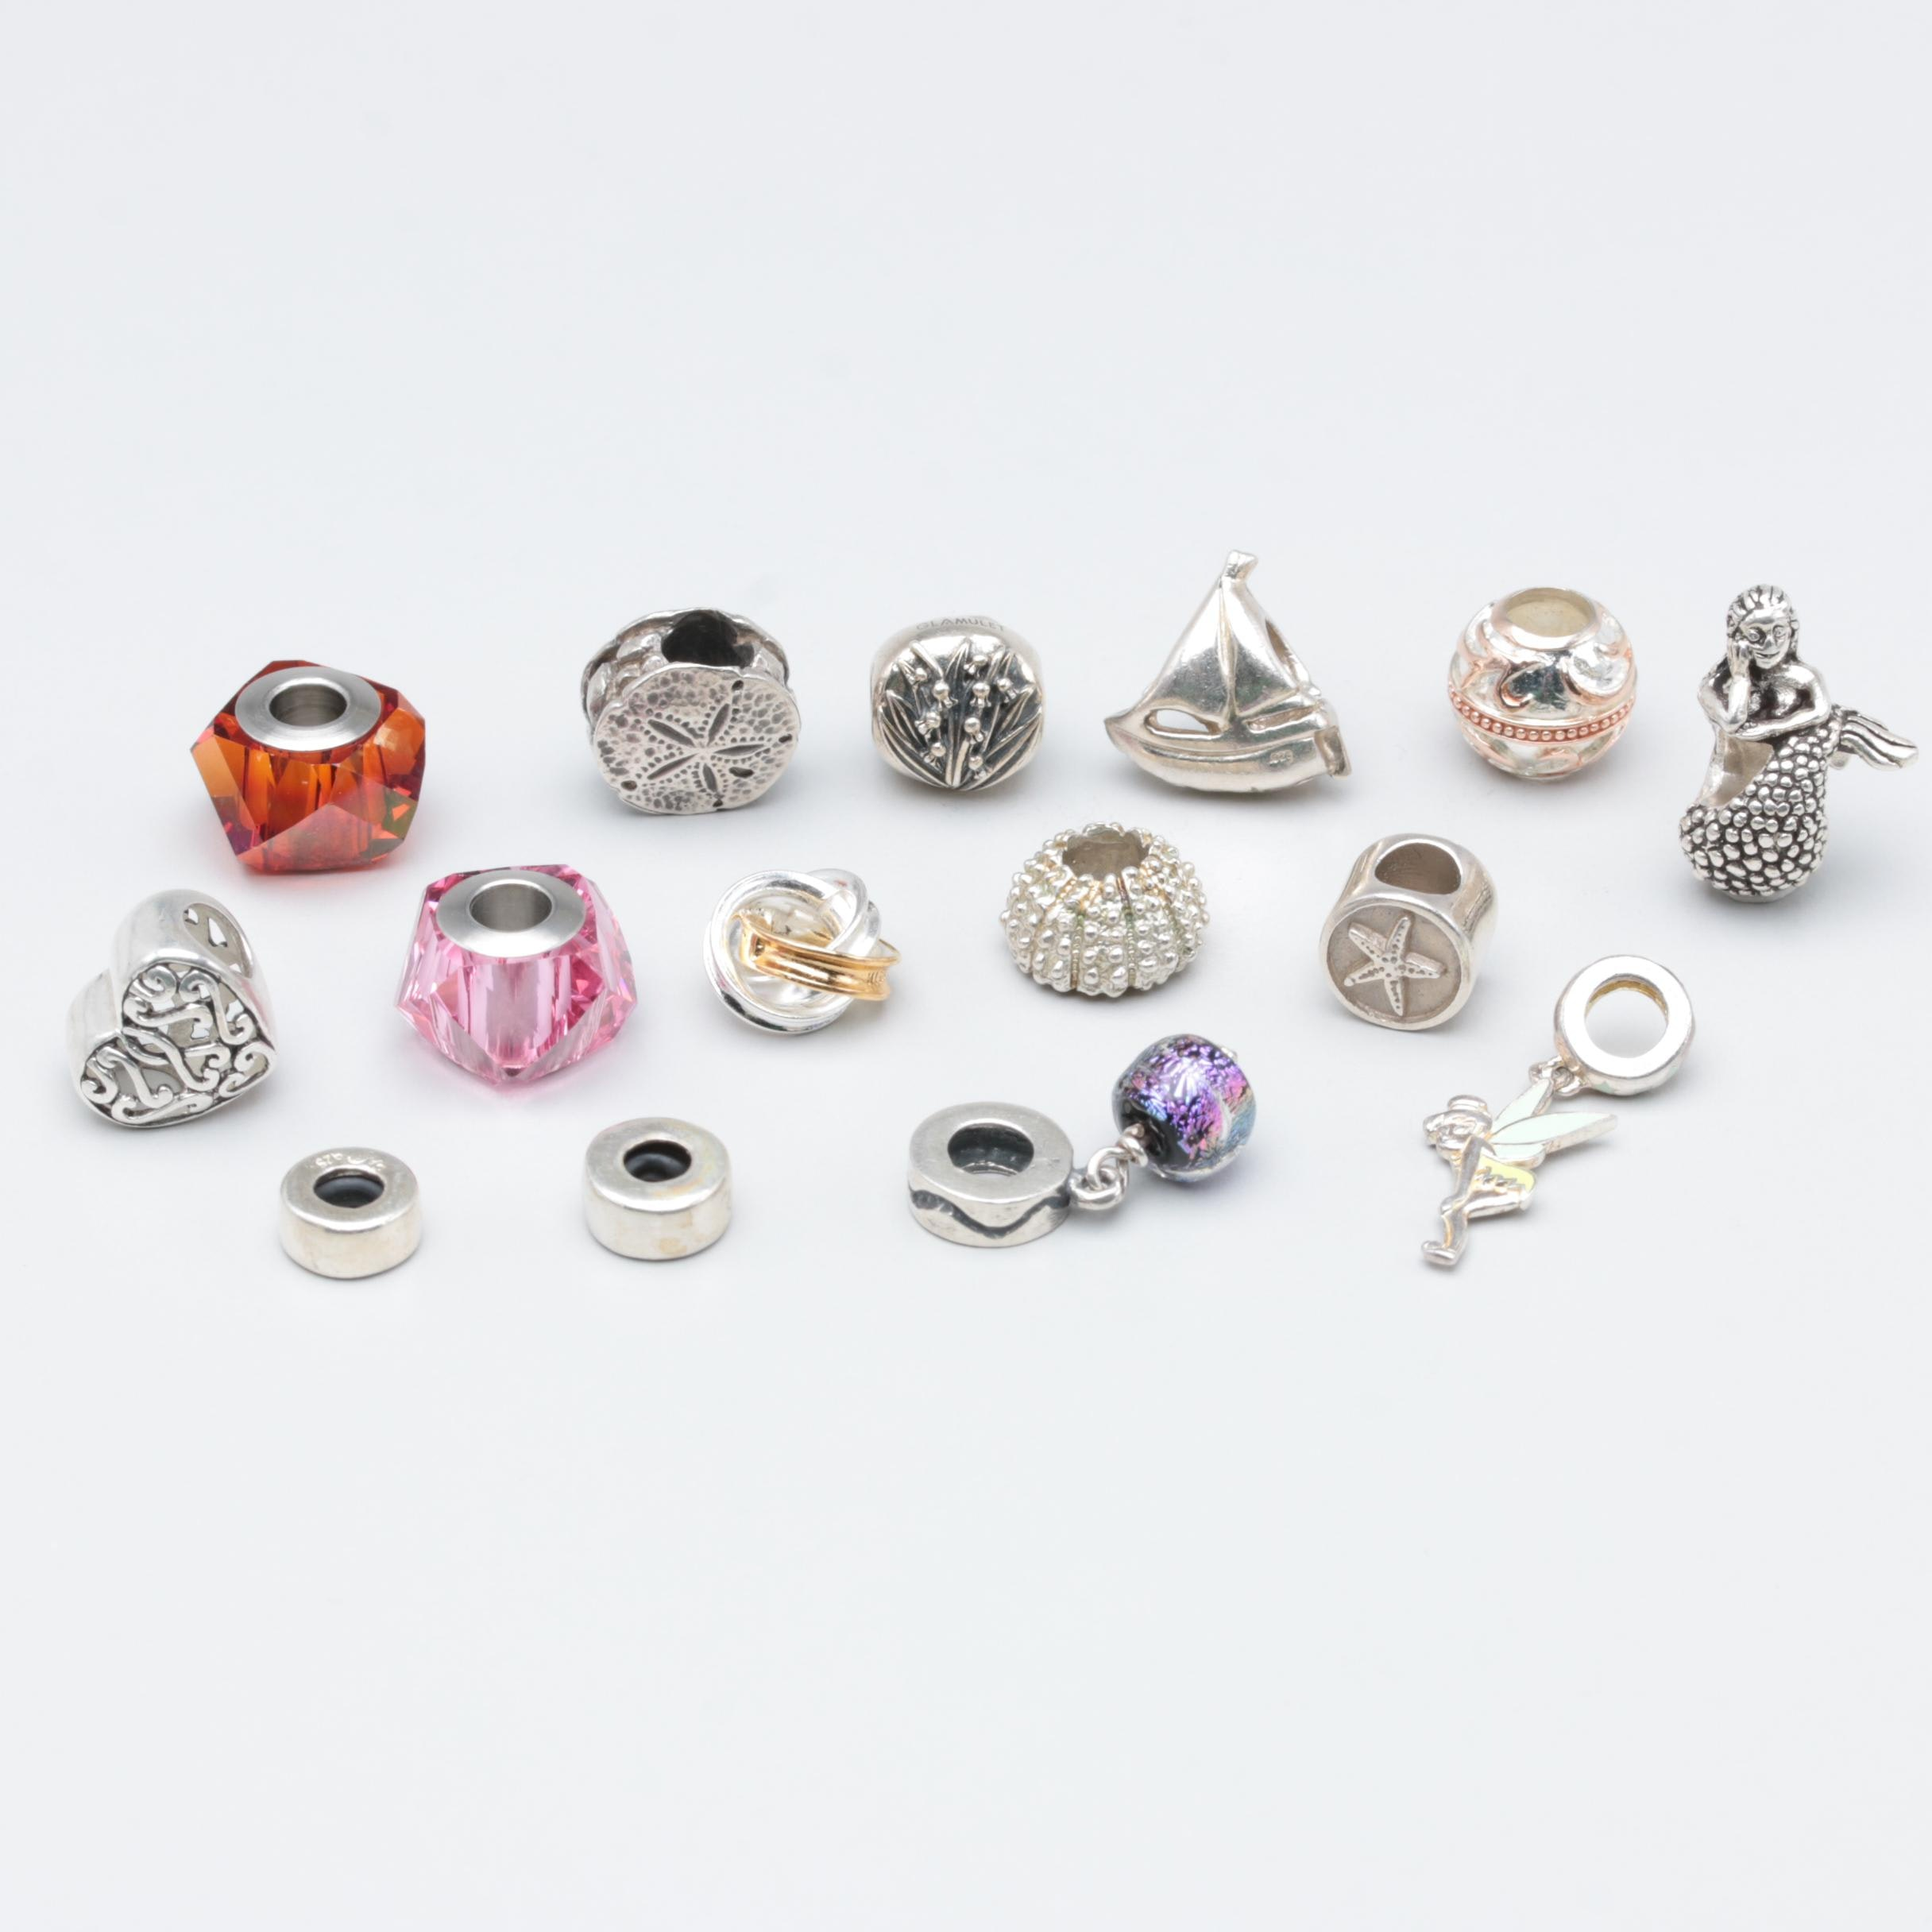 Sterling Silver and Silver Tone Charms Including Disney, Enamel and Glass